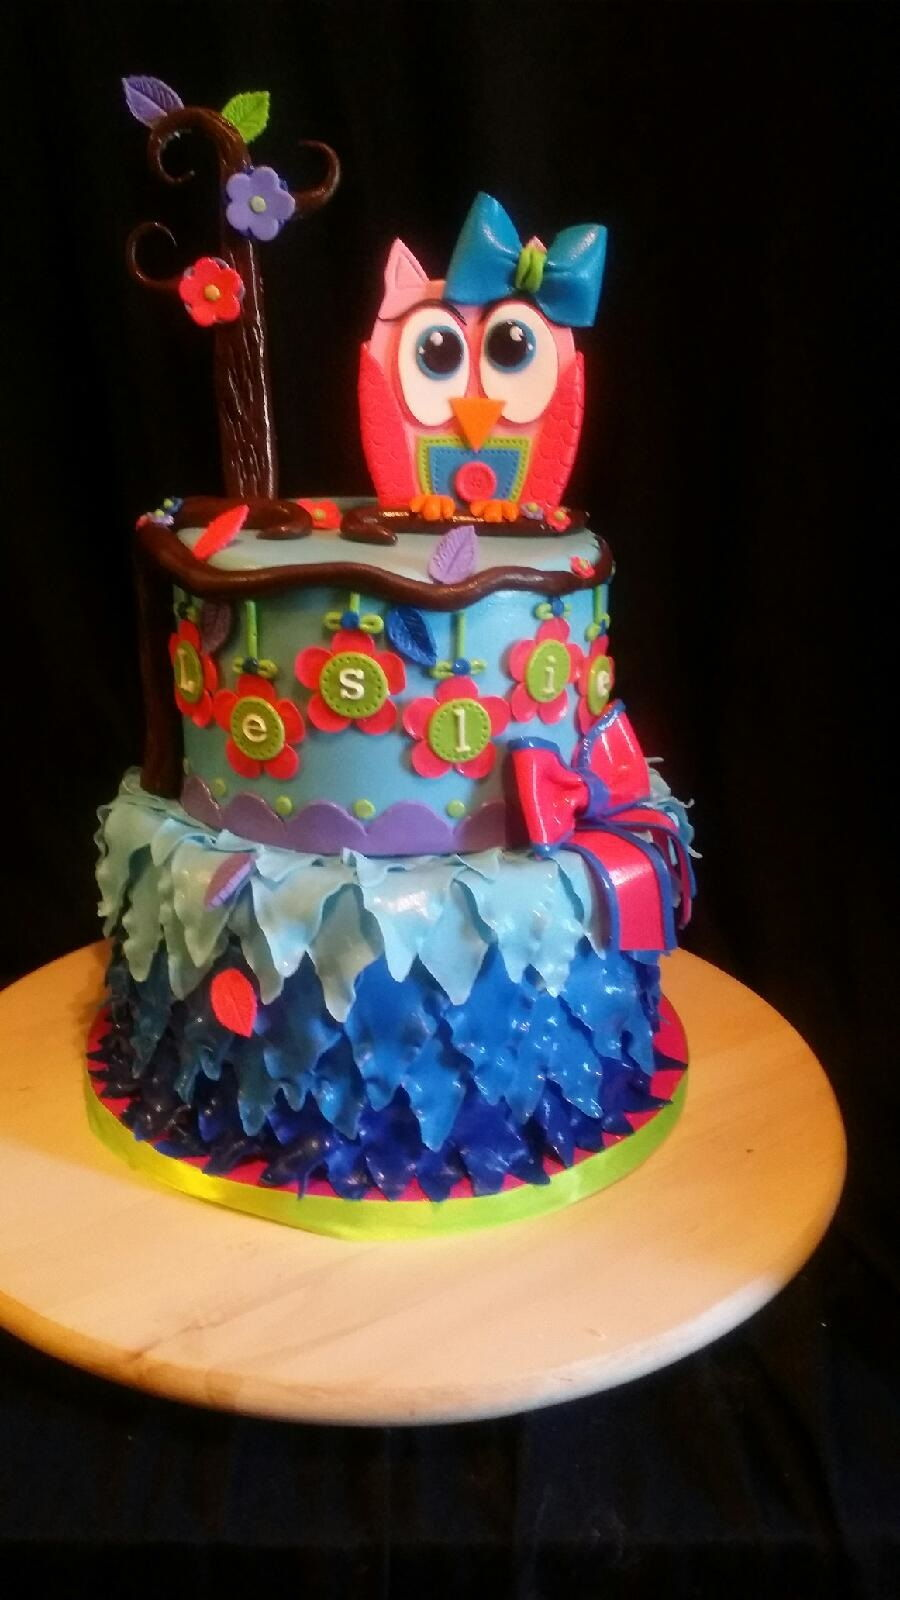 Cute Little Owl Birthday Cake on Cake Central